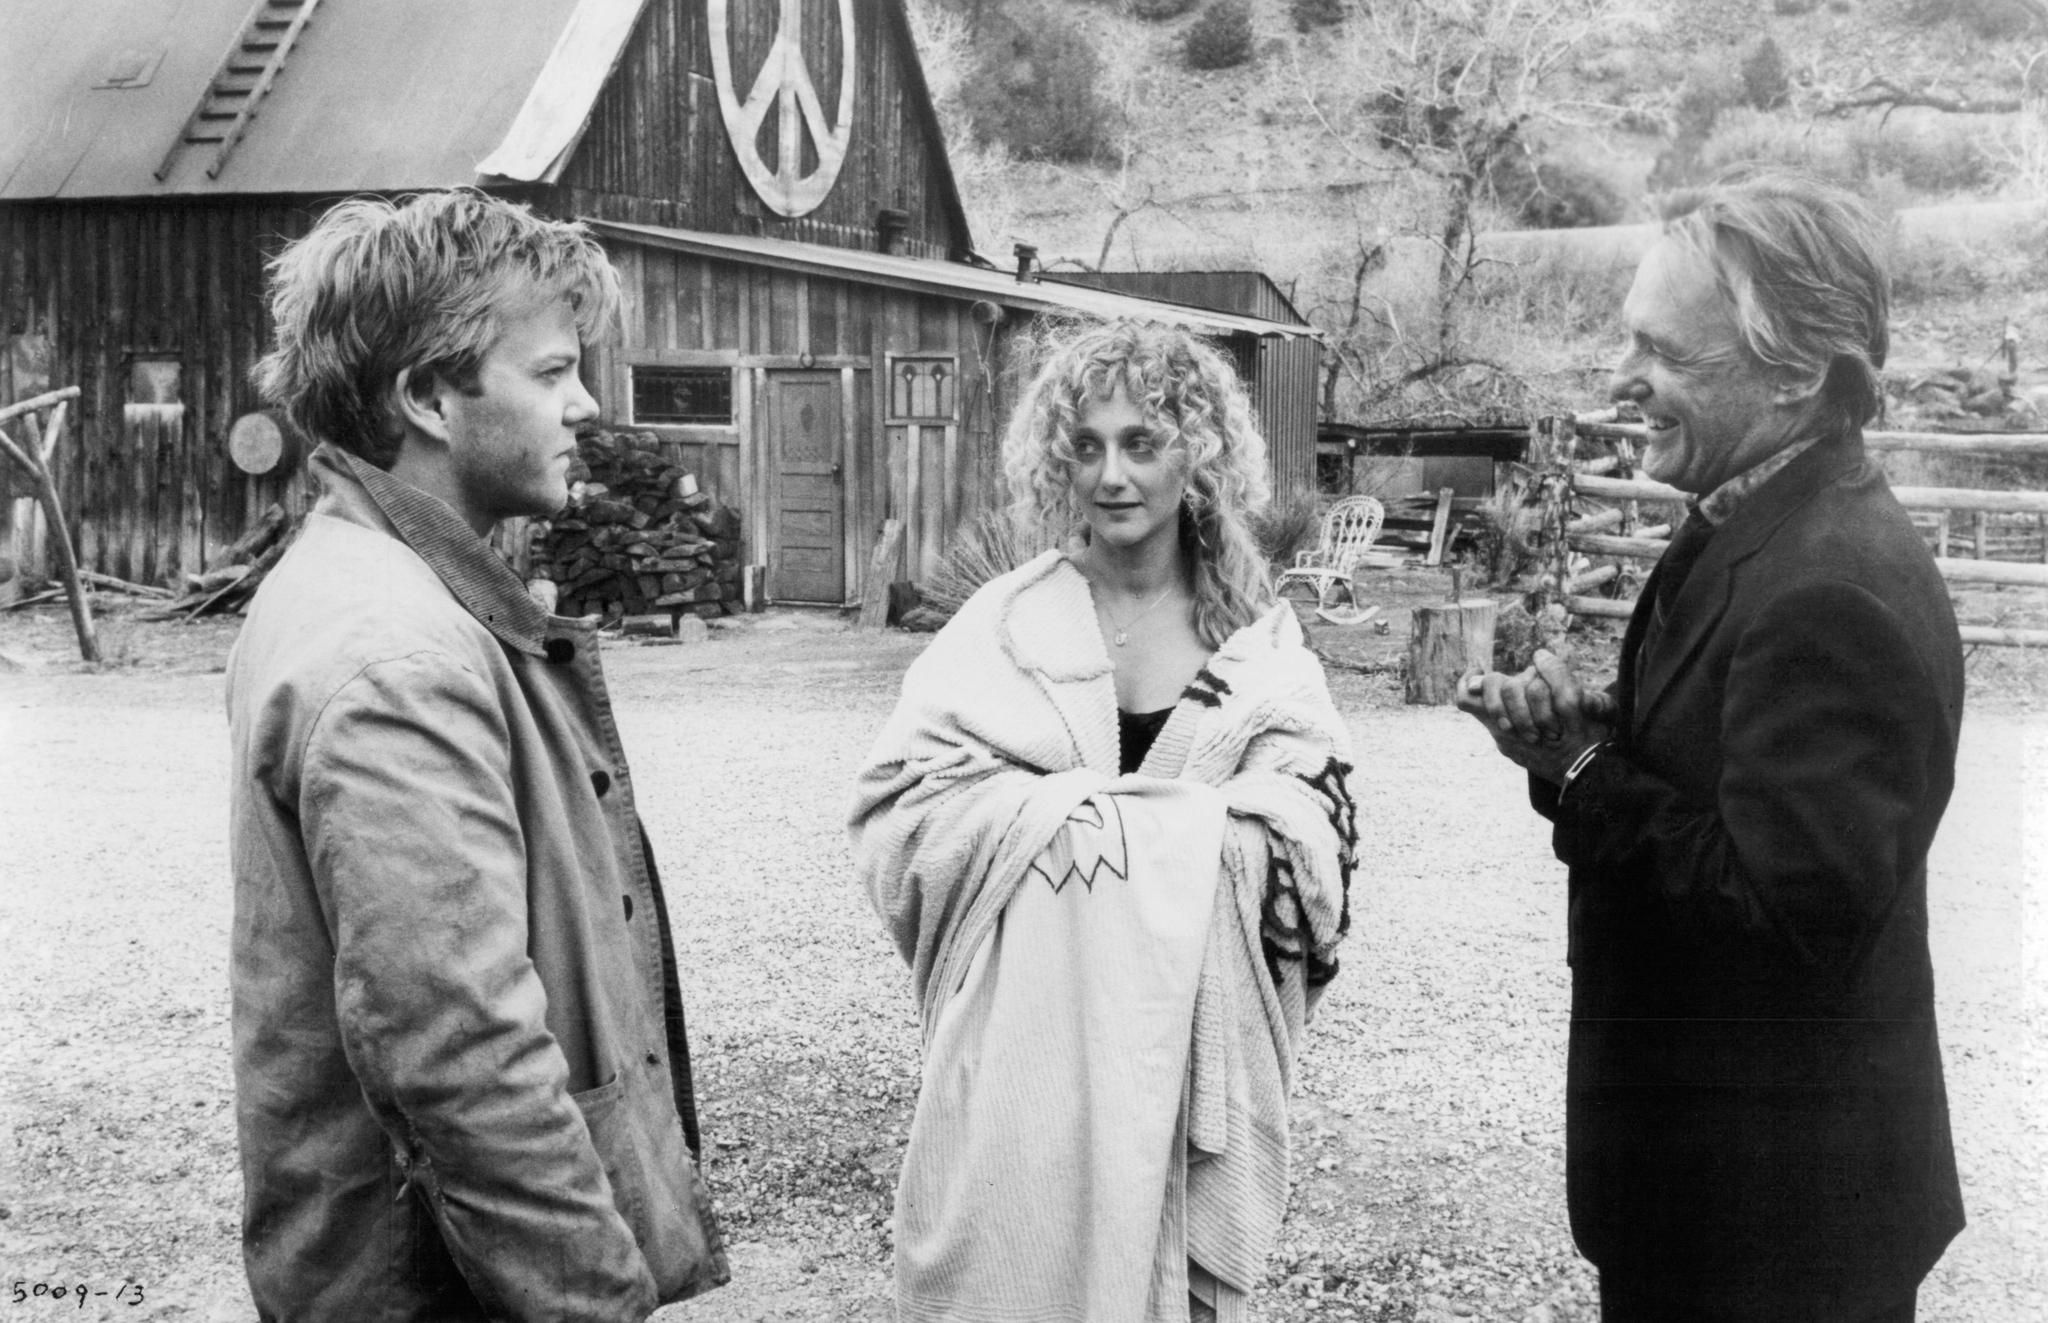 Kiefer Sutherland, Carol Kane, and Dennis Hopper in Flashback